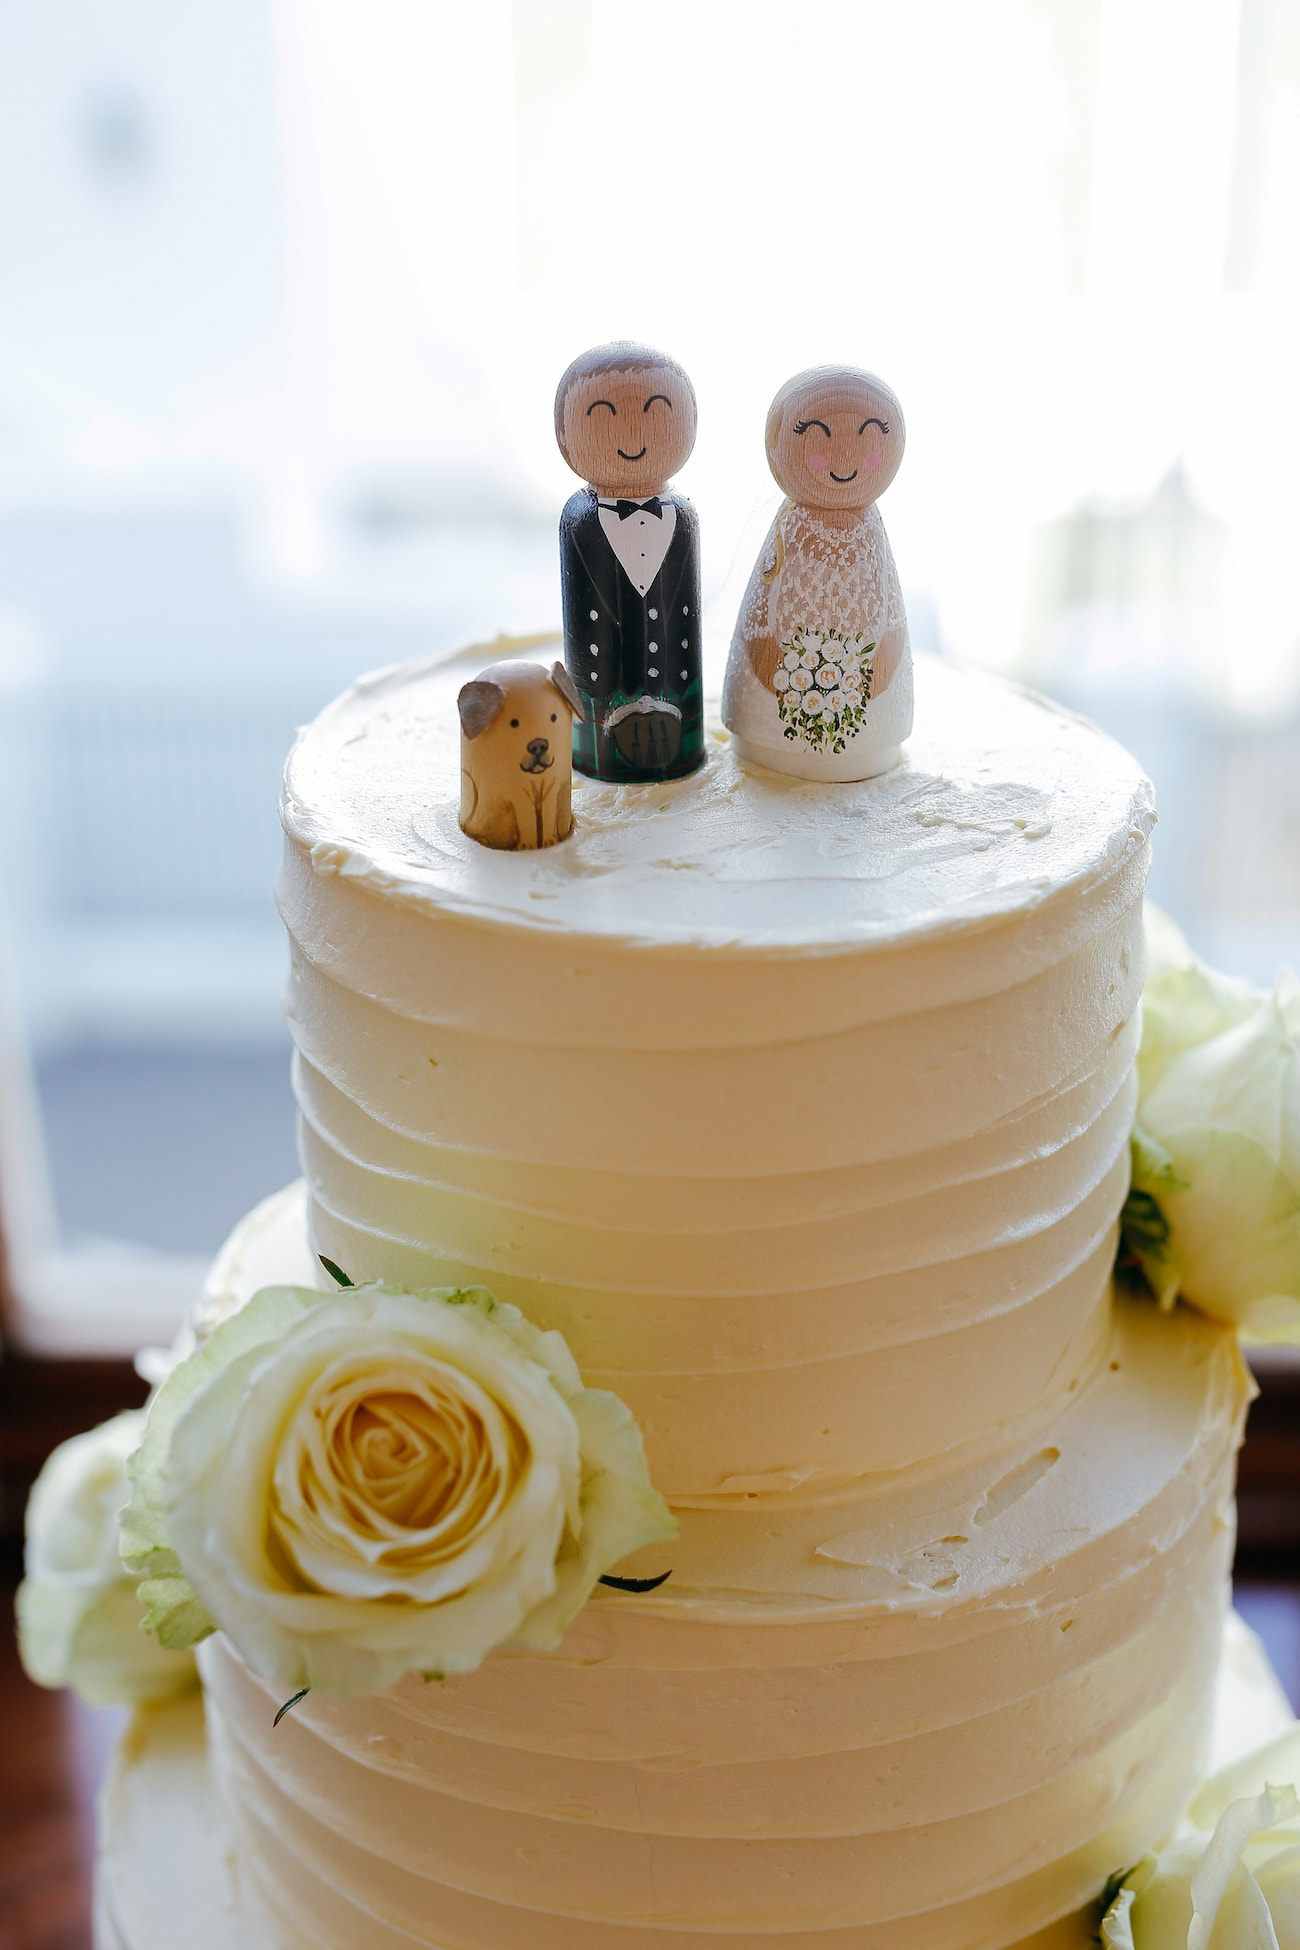 Custom Wood Cake Toppers | Vintage Chic City Wedding at the Cape Town Club | Credit: Duane Smith